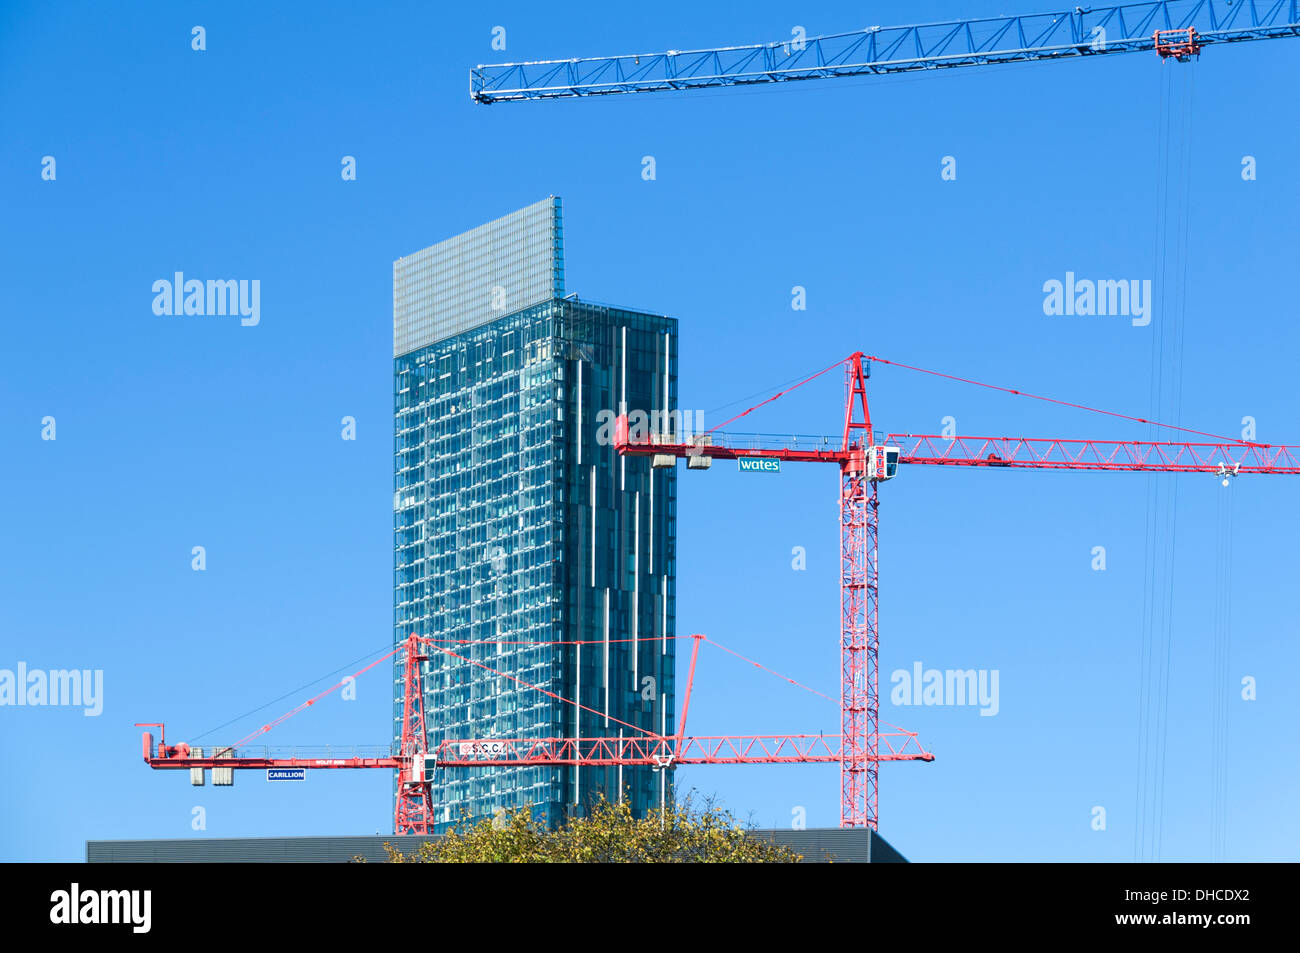 Beetham Tower and tower cranes of the First Street construction site, Manchester, England, UK.  Also called the Hilton Tower. - Stock Image